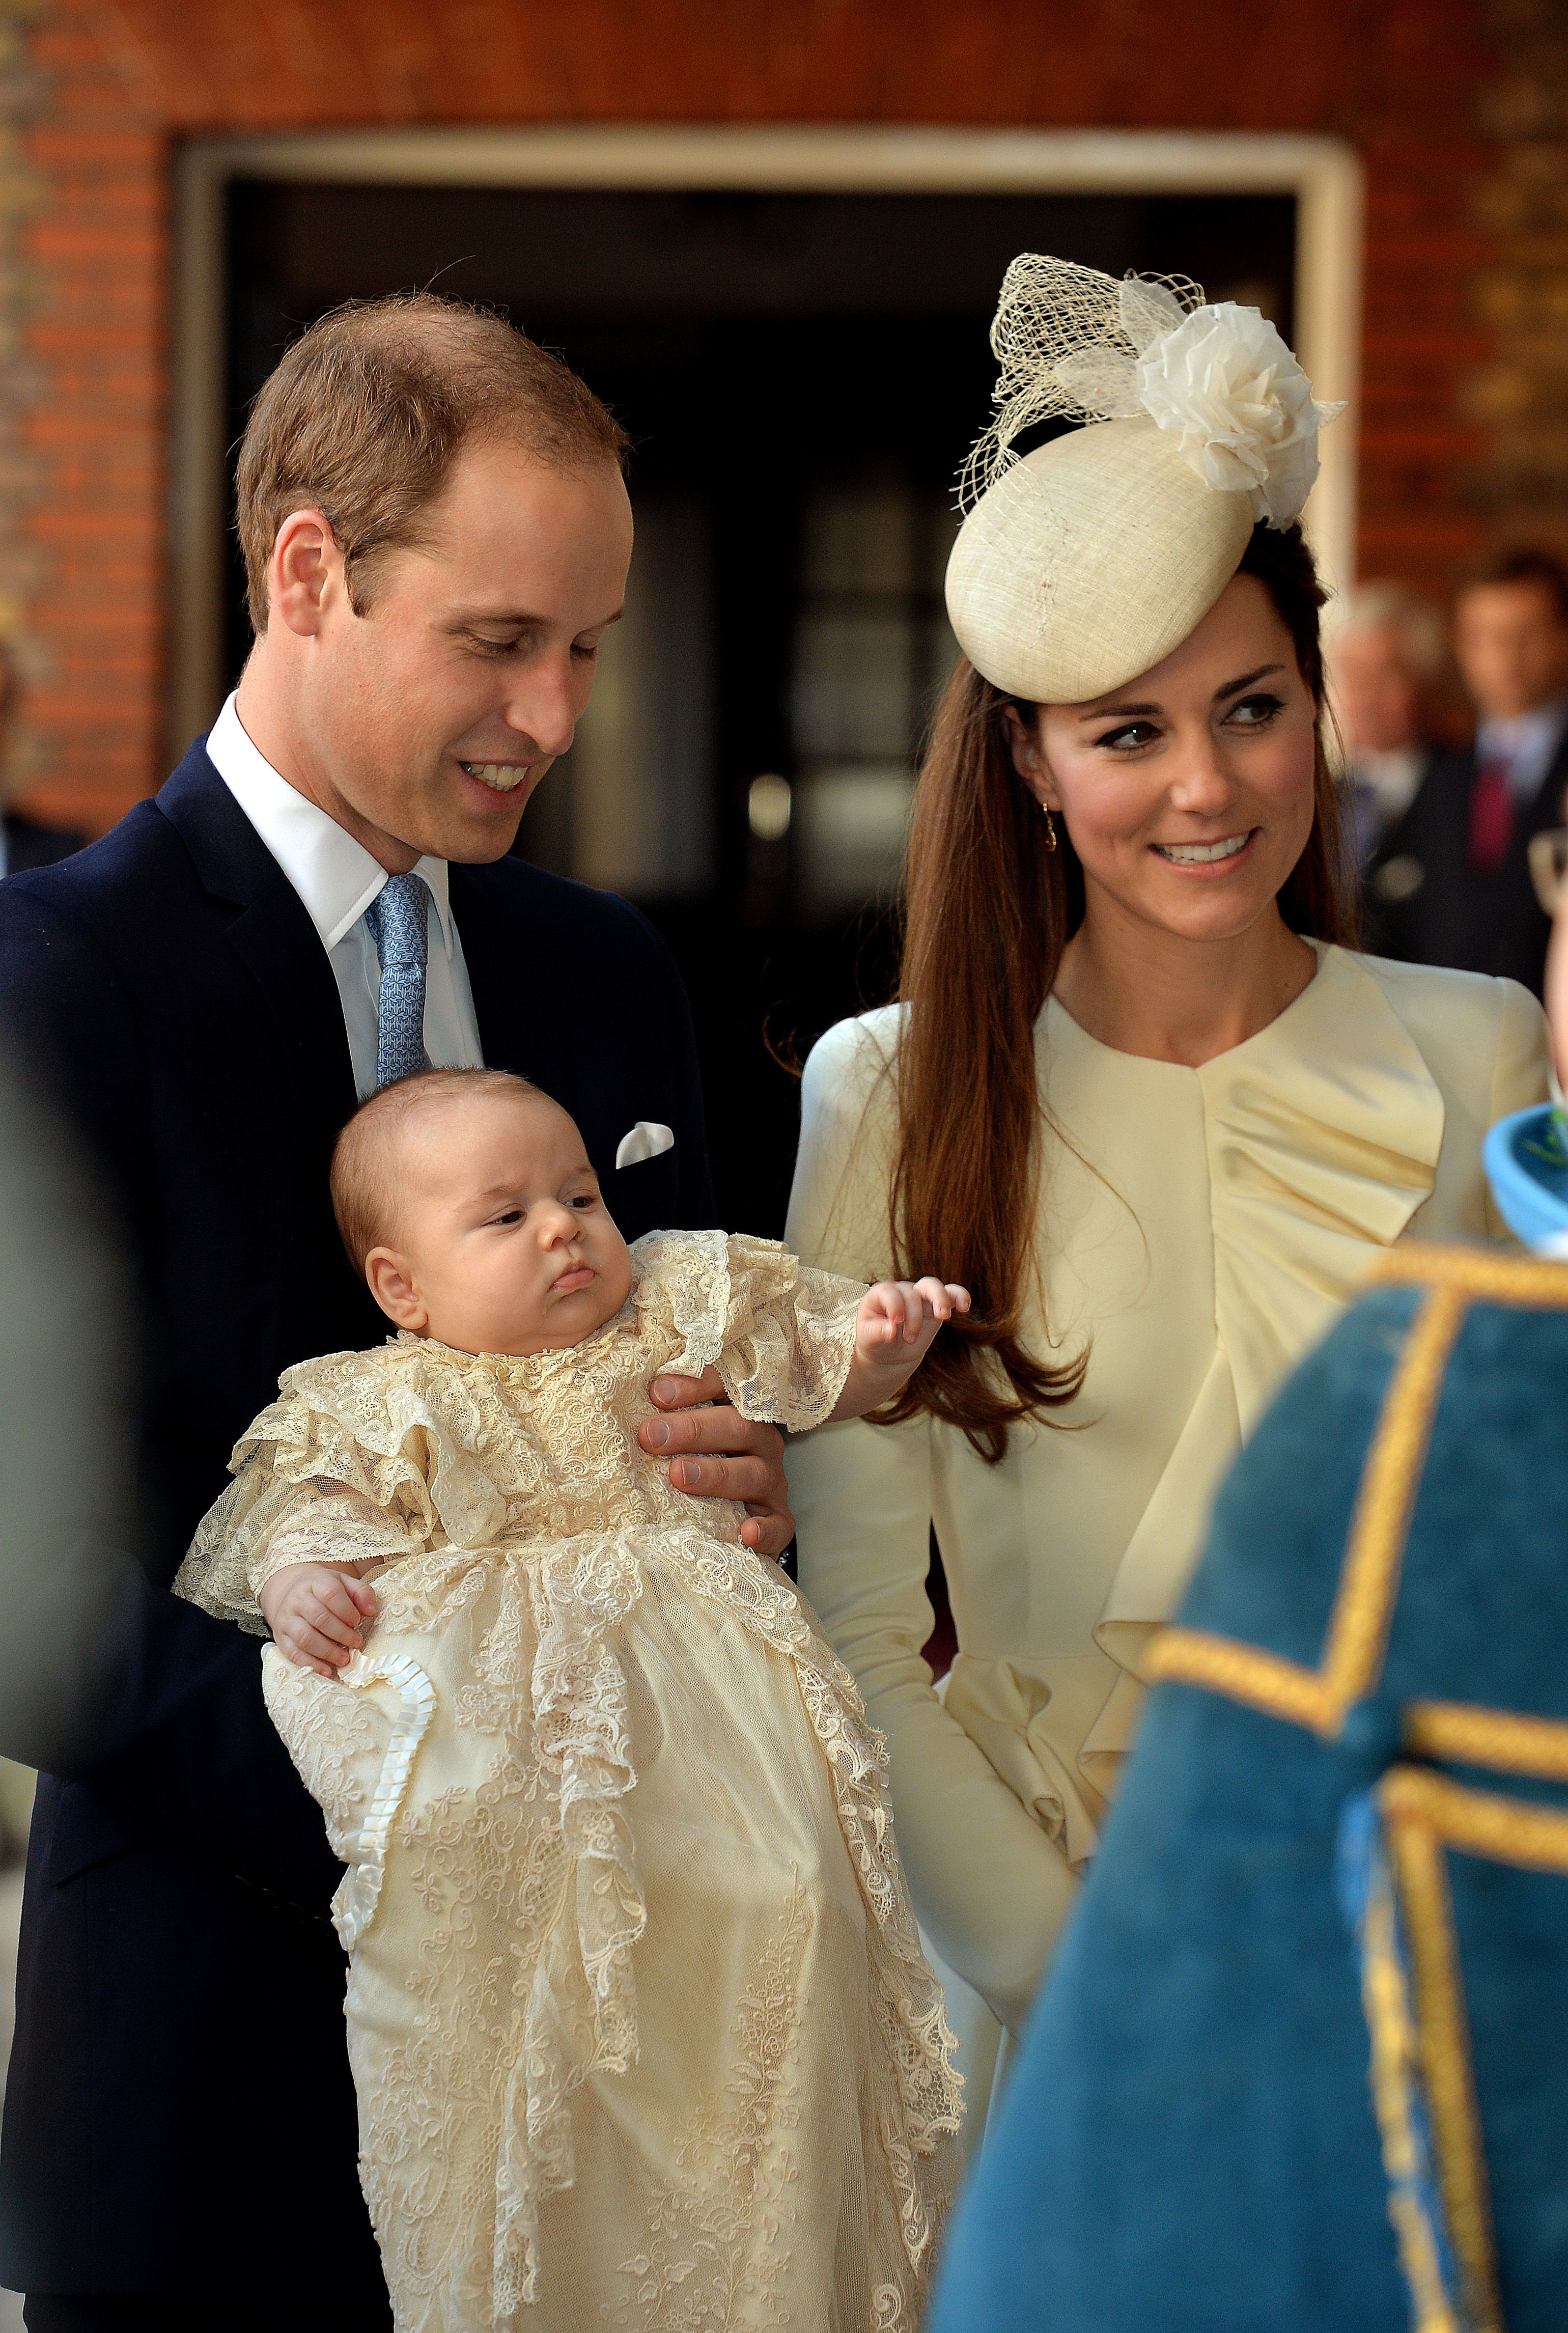 Prince George is christened in London